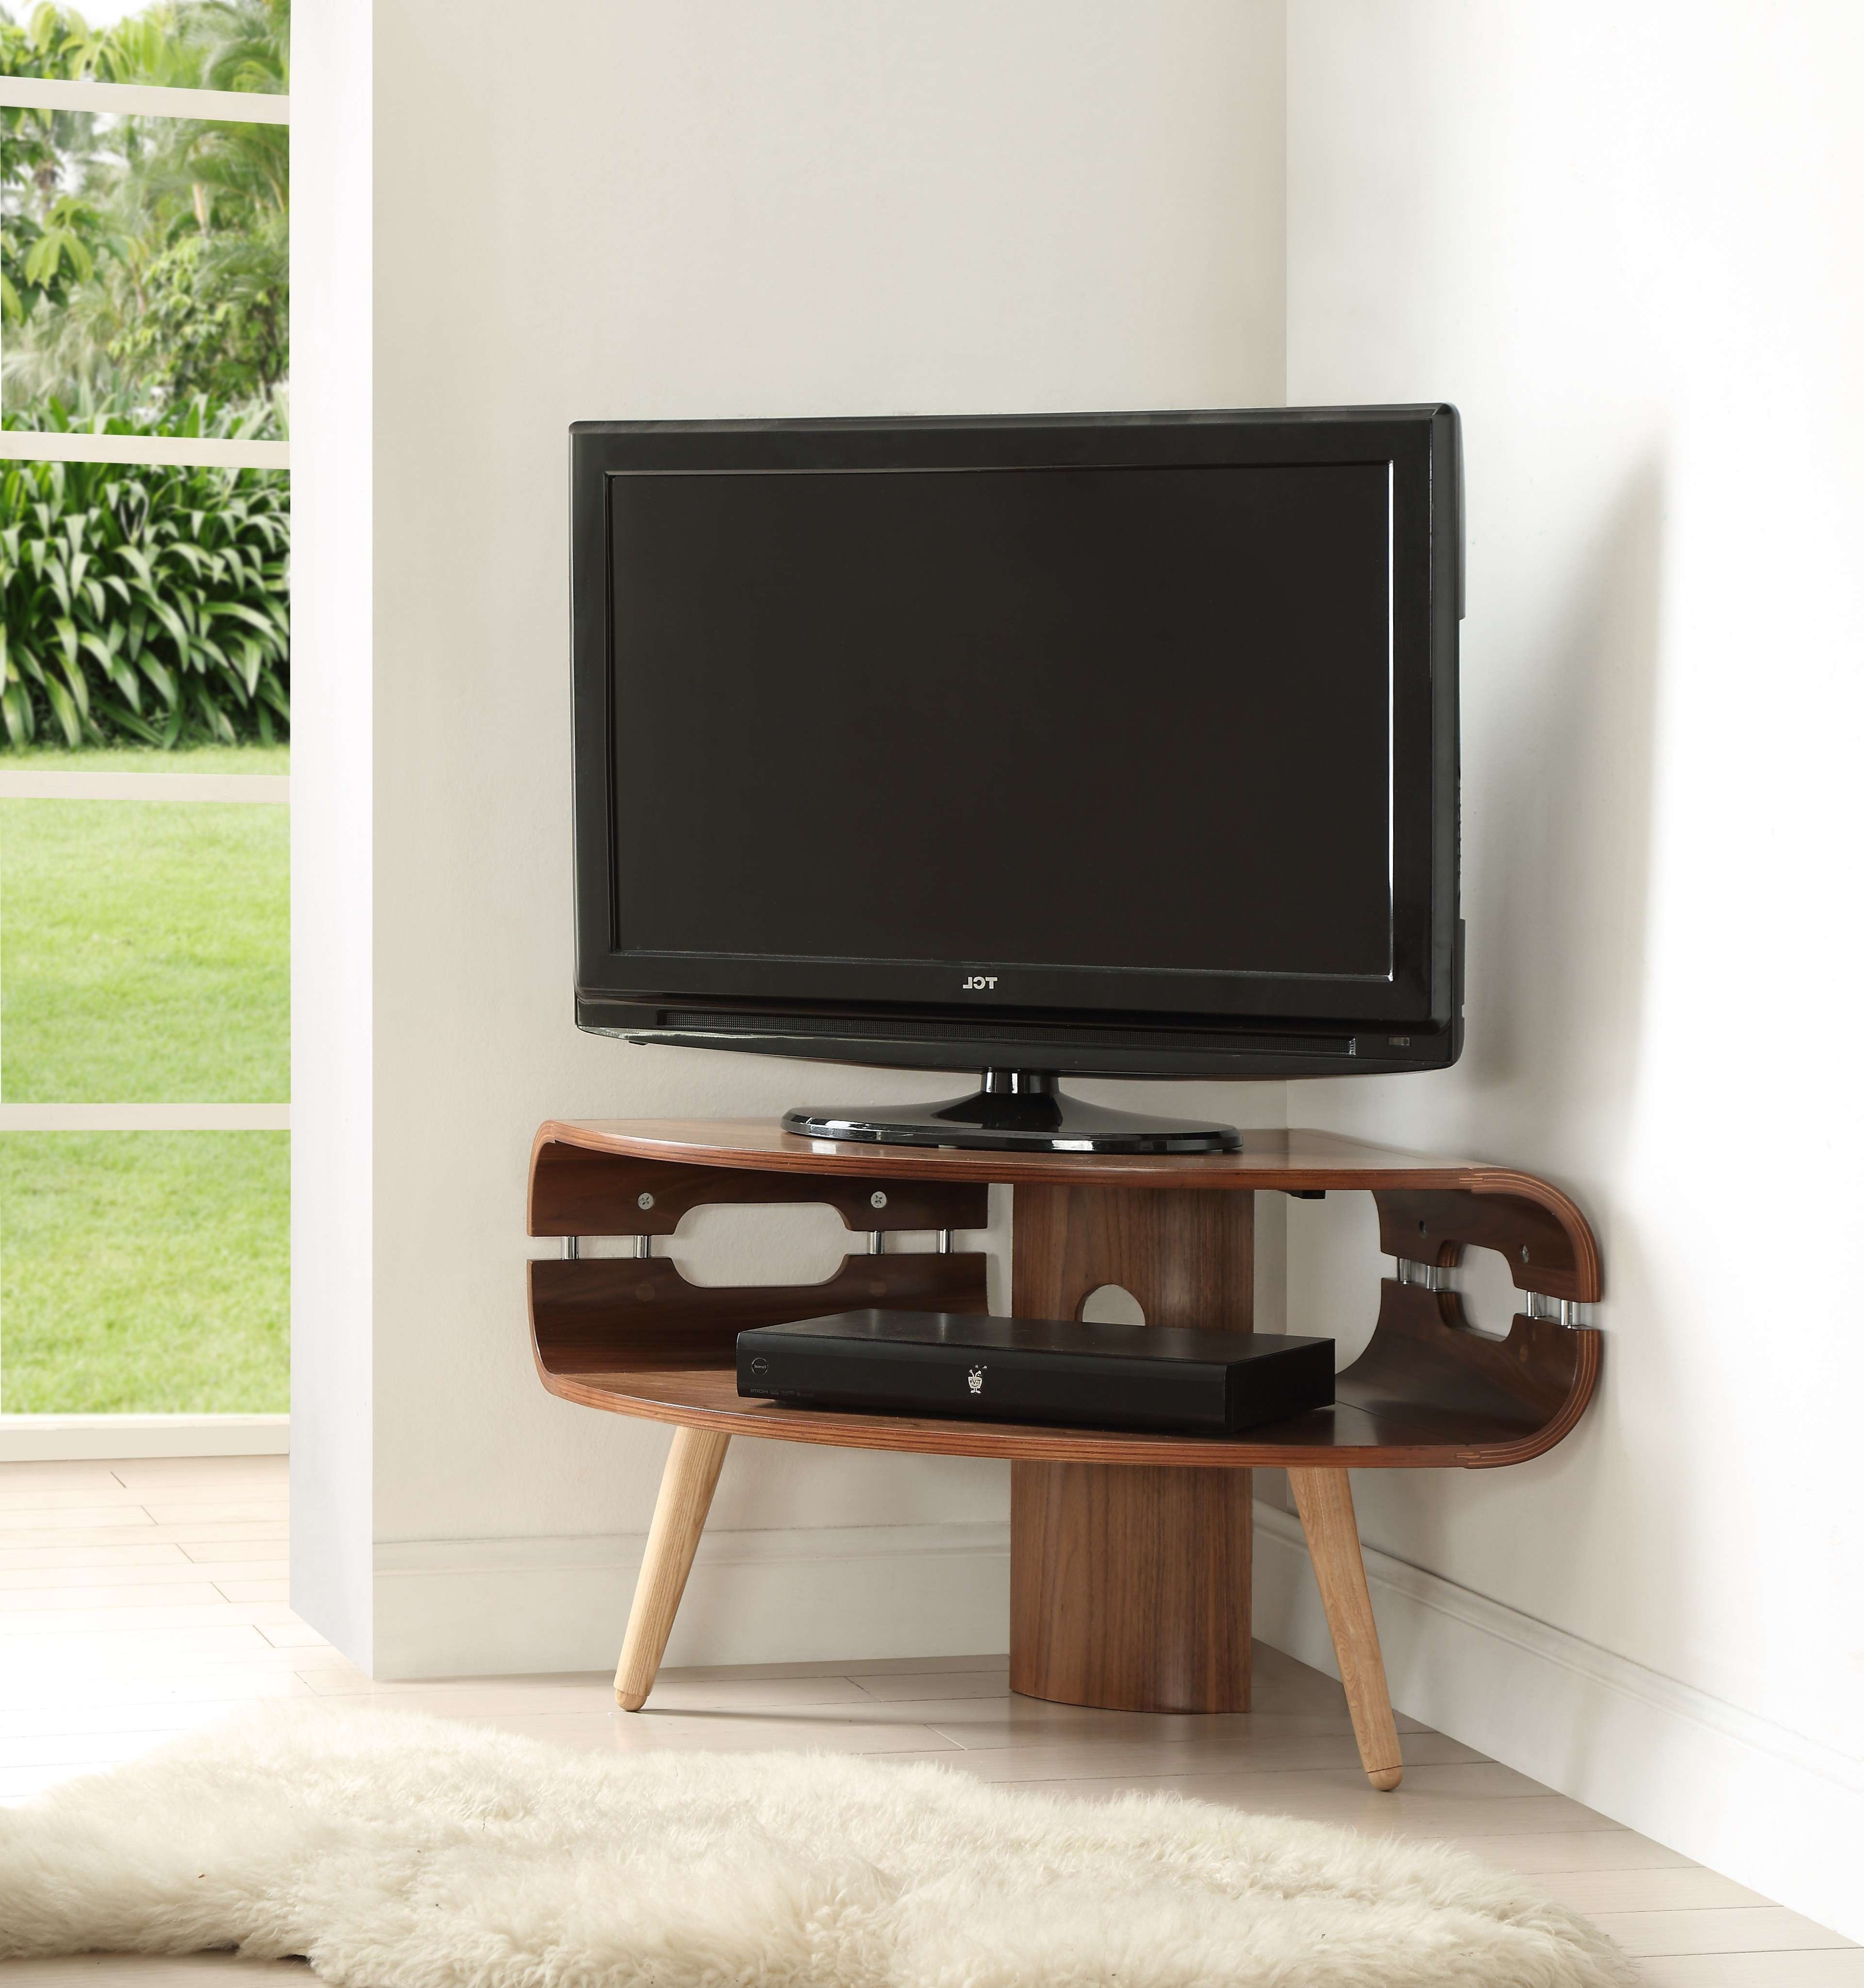 Jf701 Corner Tv Stand – Cooks For Retro Corner Tv Stands (Gallery 4 of 15)